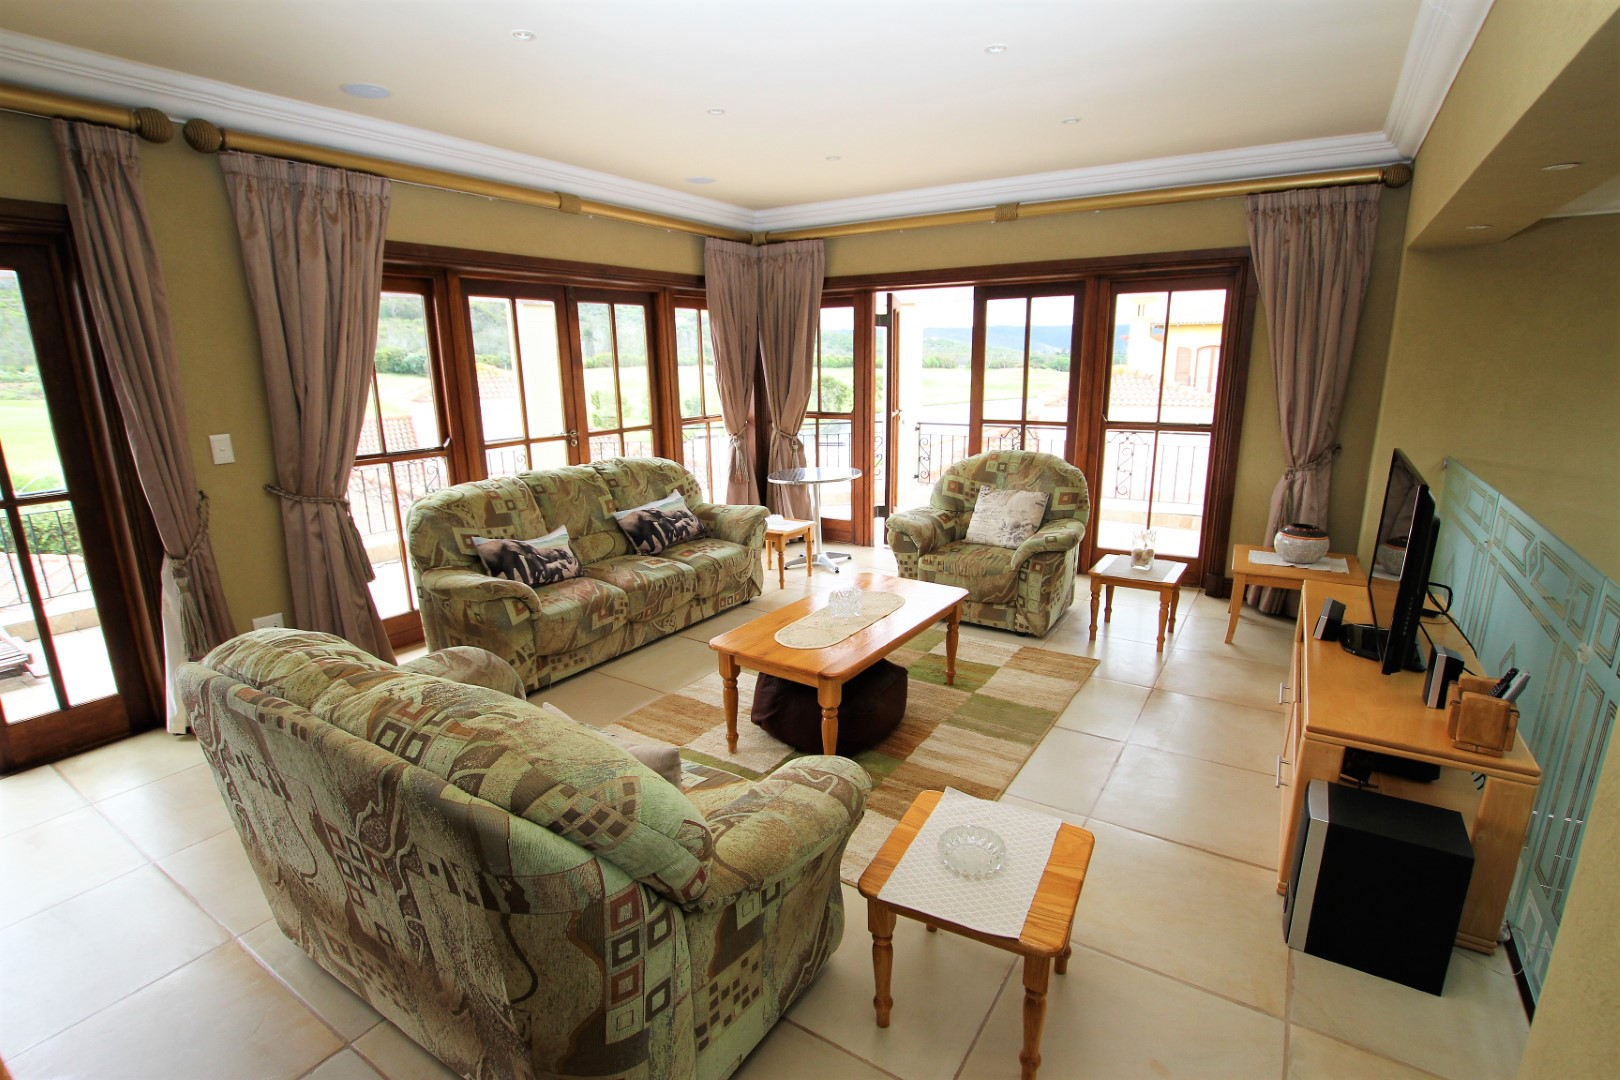 Plettenberg Bay, 6600, 3 Bedrooms Bedrooms, ,3 BathroomsBathrooms,Villa,For Sale,1063